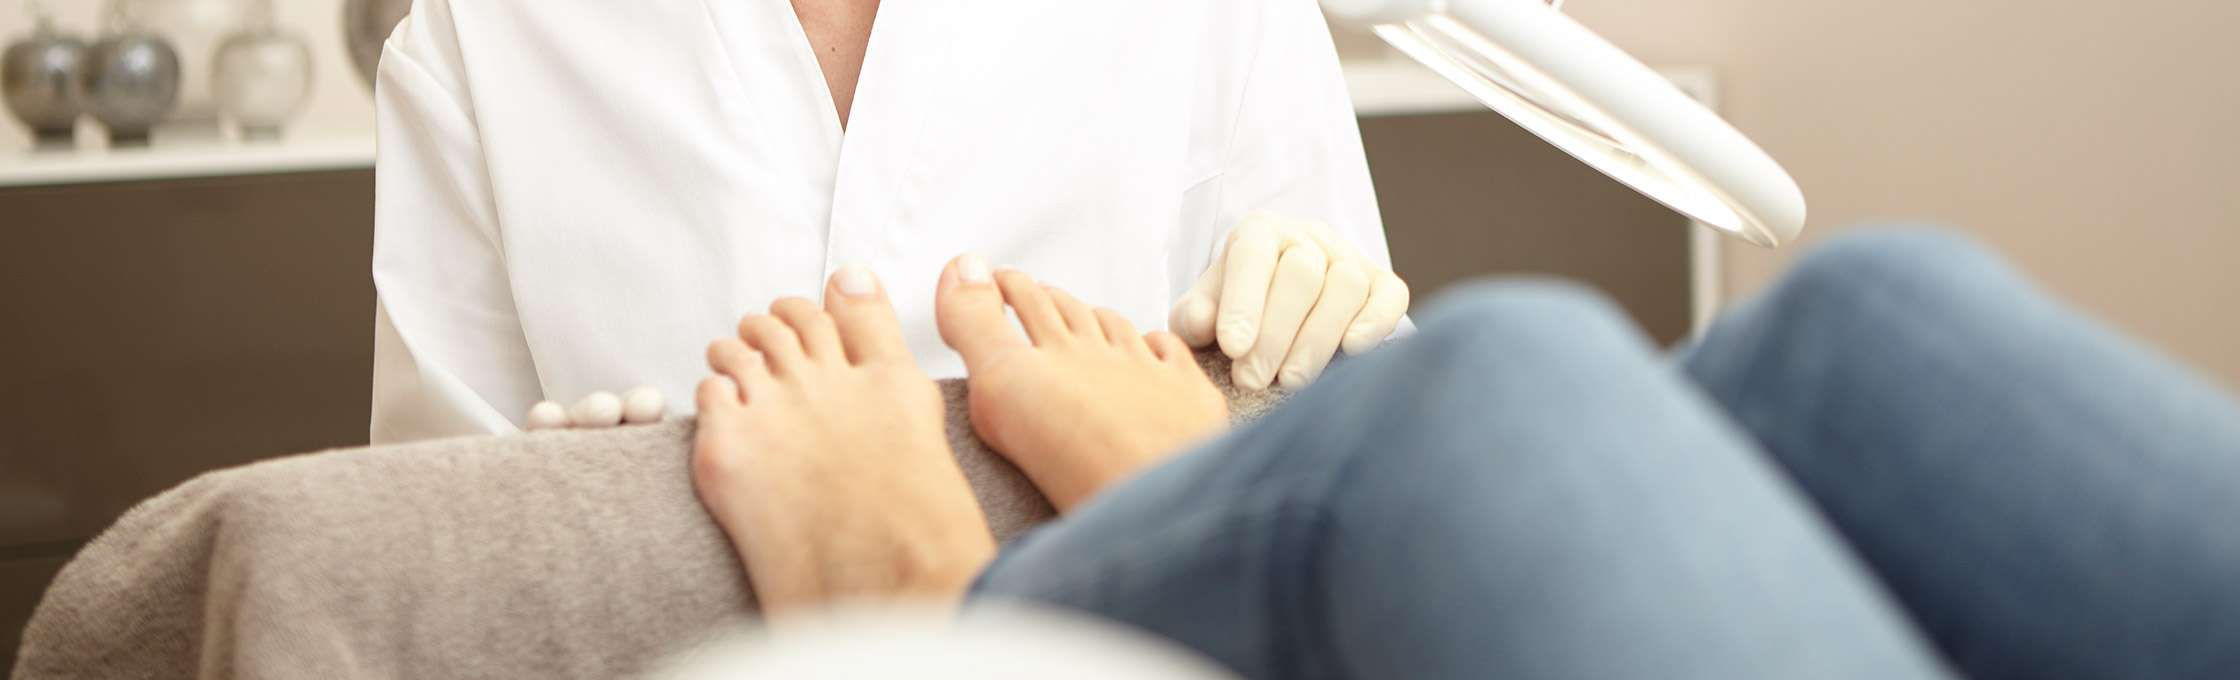 Feet a patient at a nail treatment. Clean and healthy nails can be seen after a podiatric treatment. The patient's legs are dressed in blue jeans. The treating podiatrist has sterile gloves.